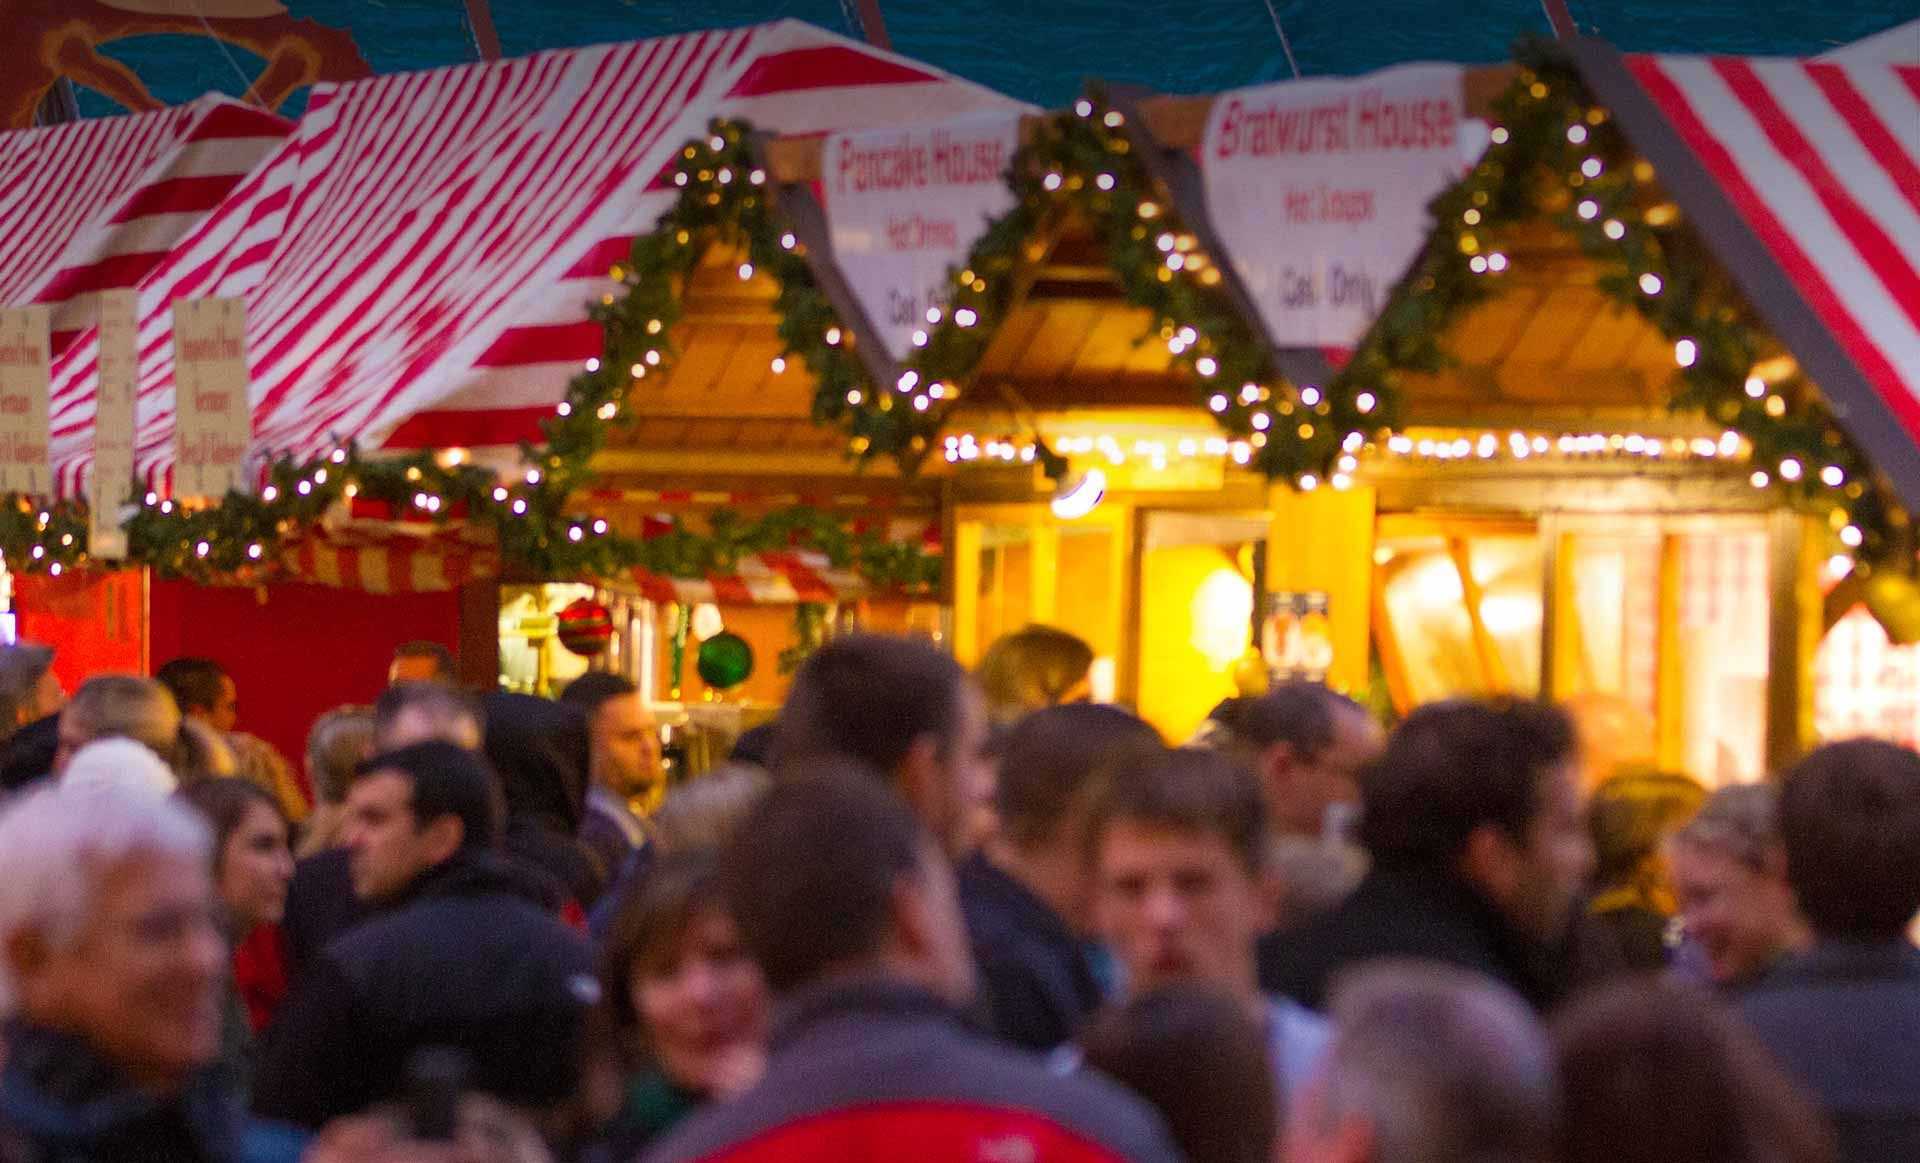 christkindlemarket chicago november 21 december 24 chicago christmaschicago winterholiday marketchristmas - Chicago Christmas Market